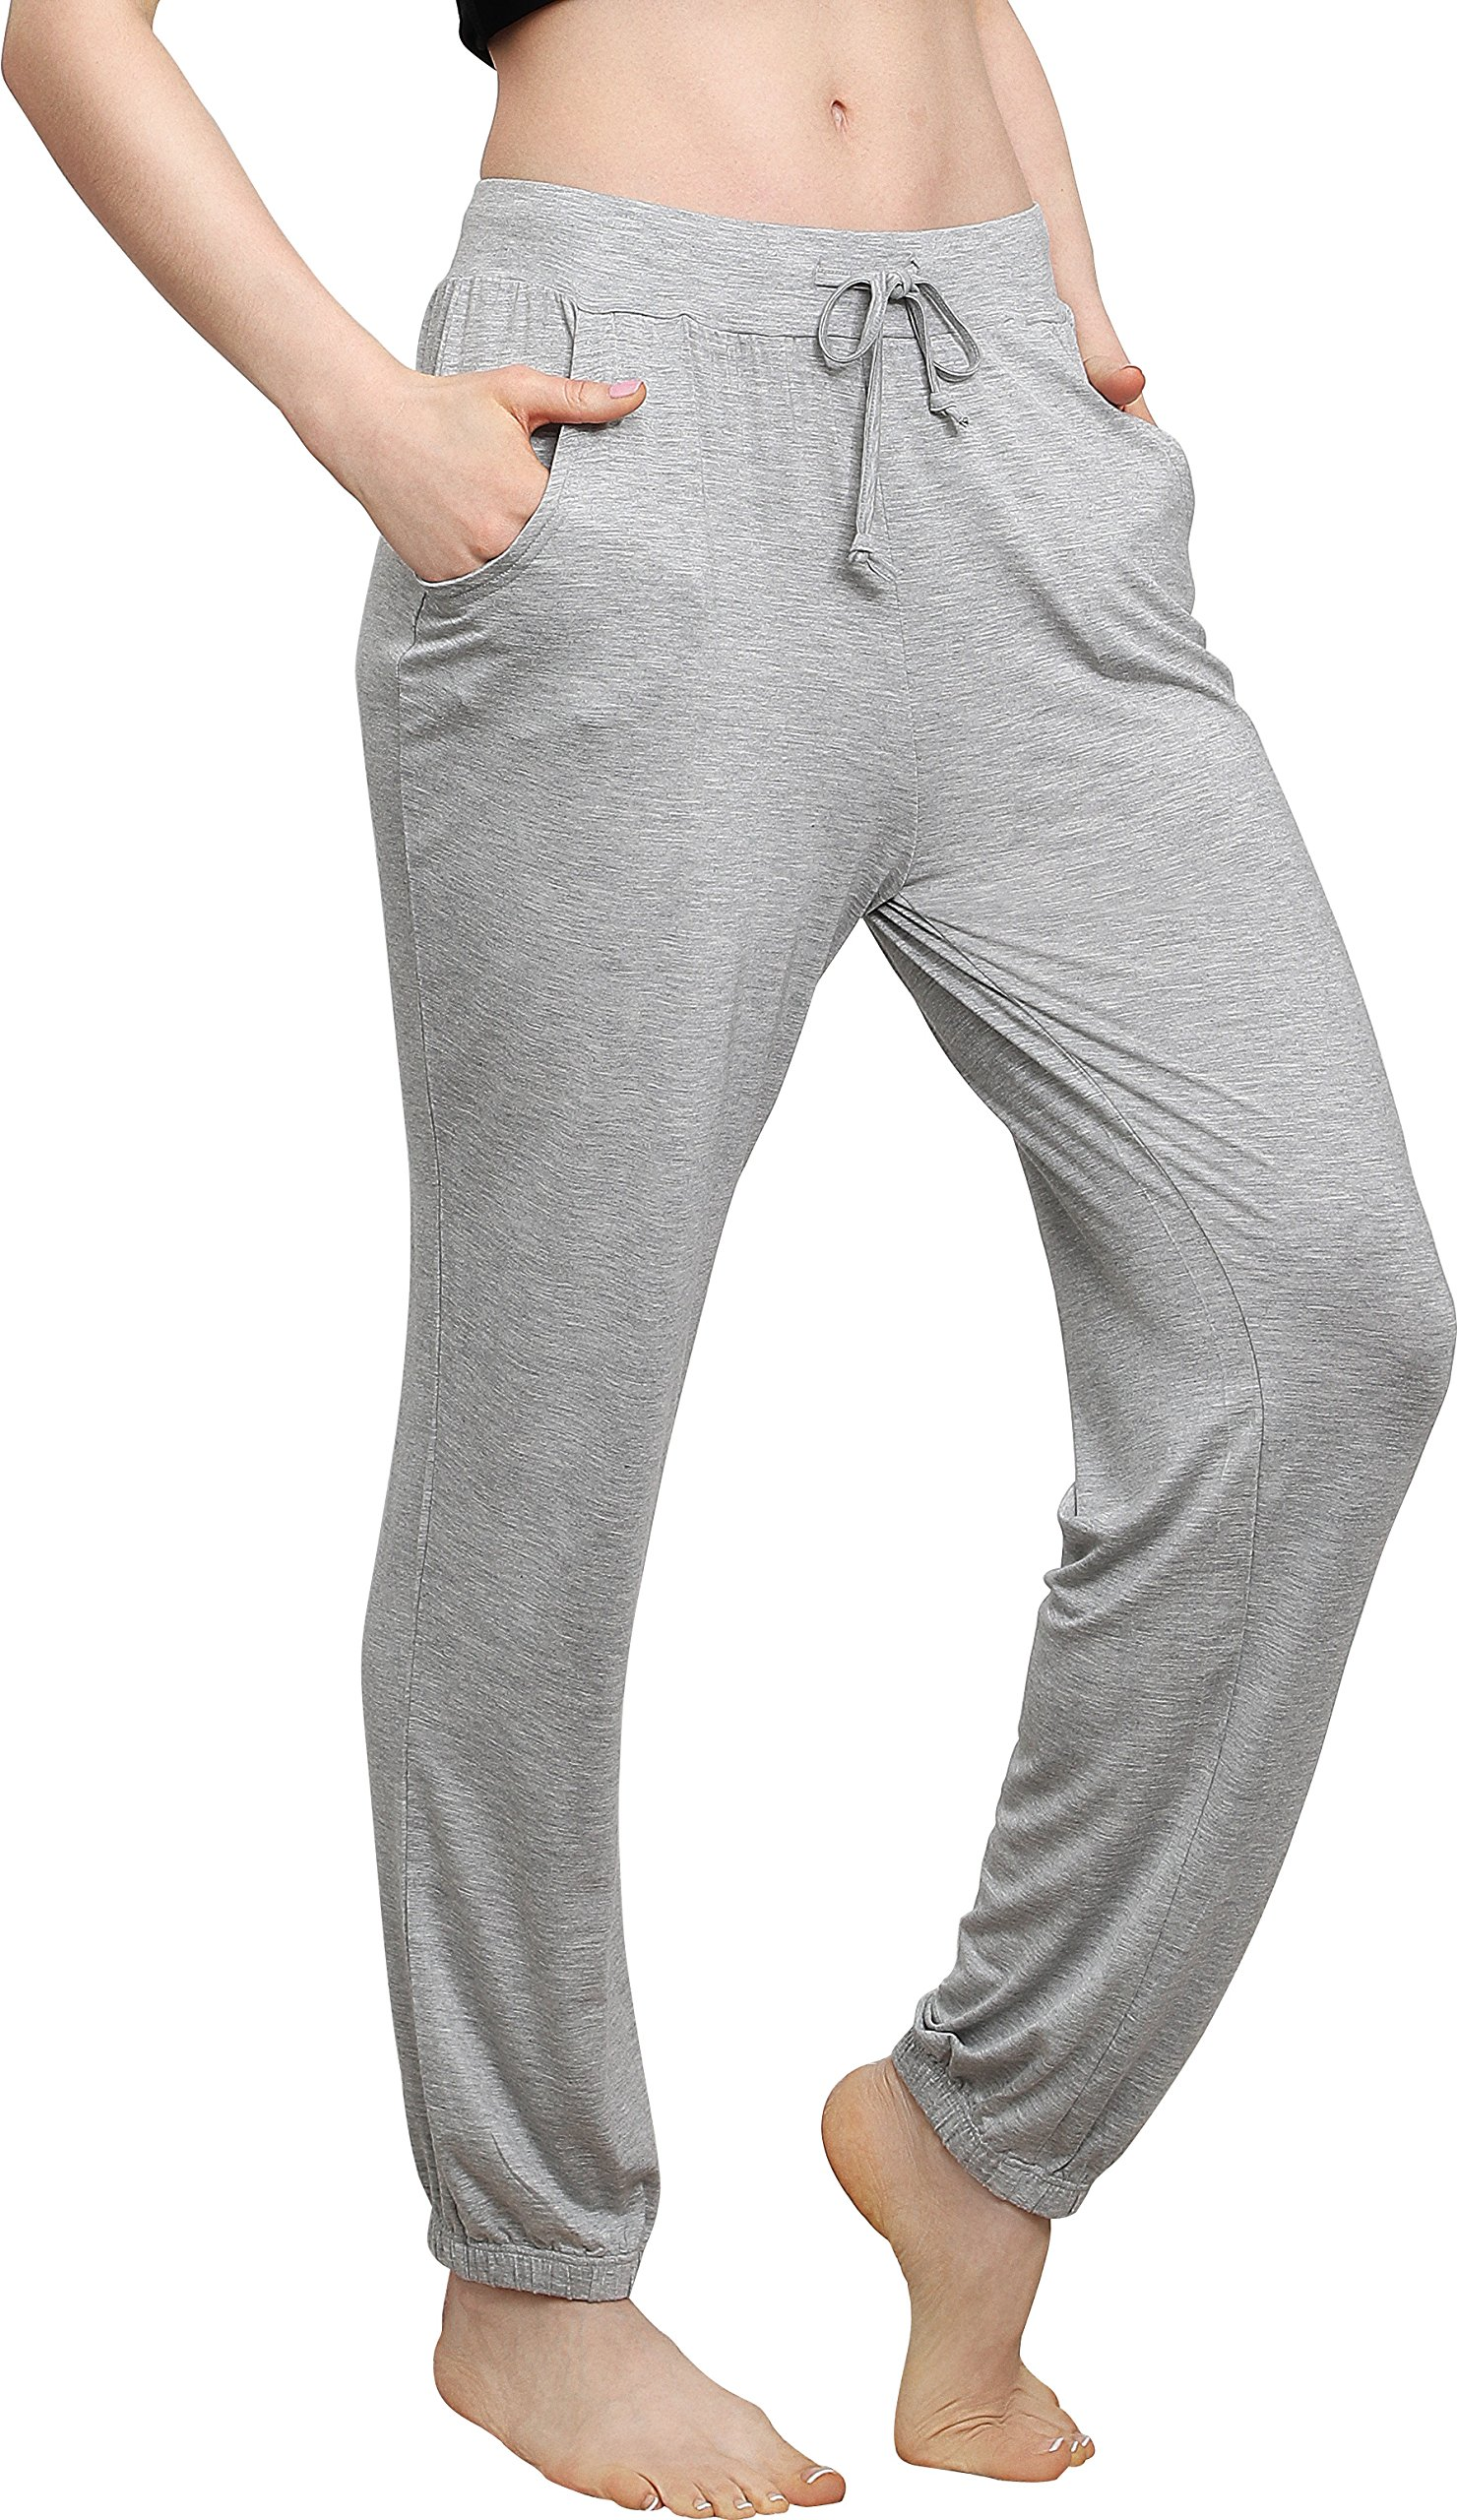 Vislivin Women's Stretch Knit Pajama Pants Modal Sleep Pant Gray Thin M